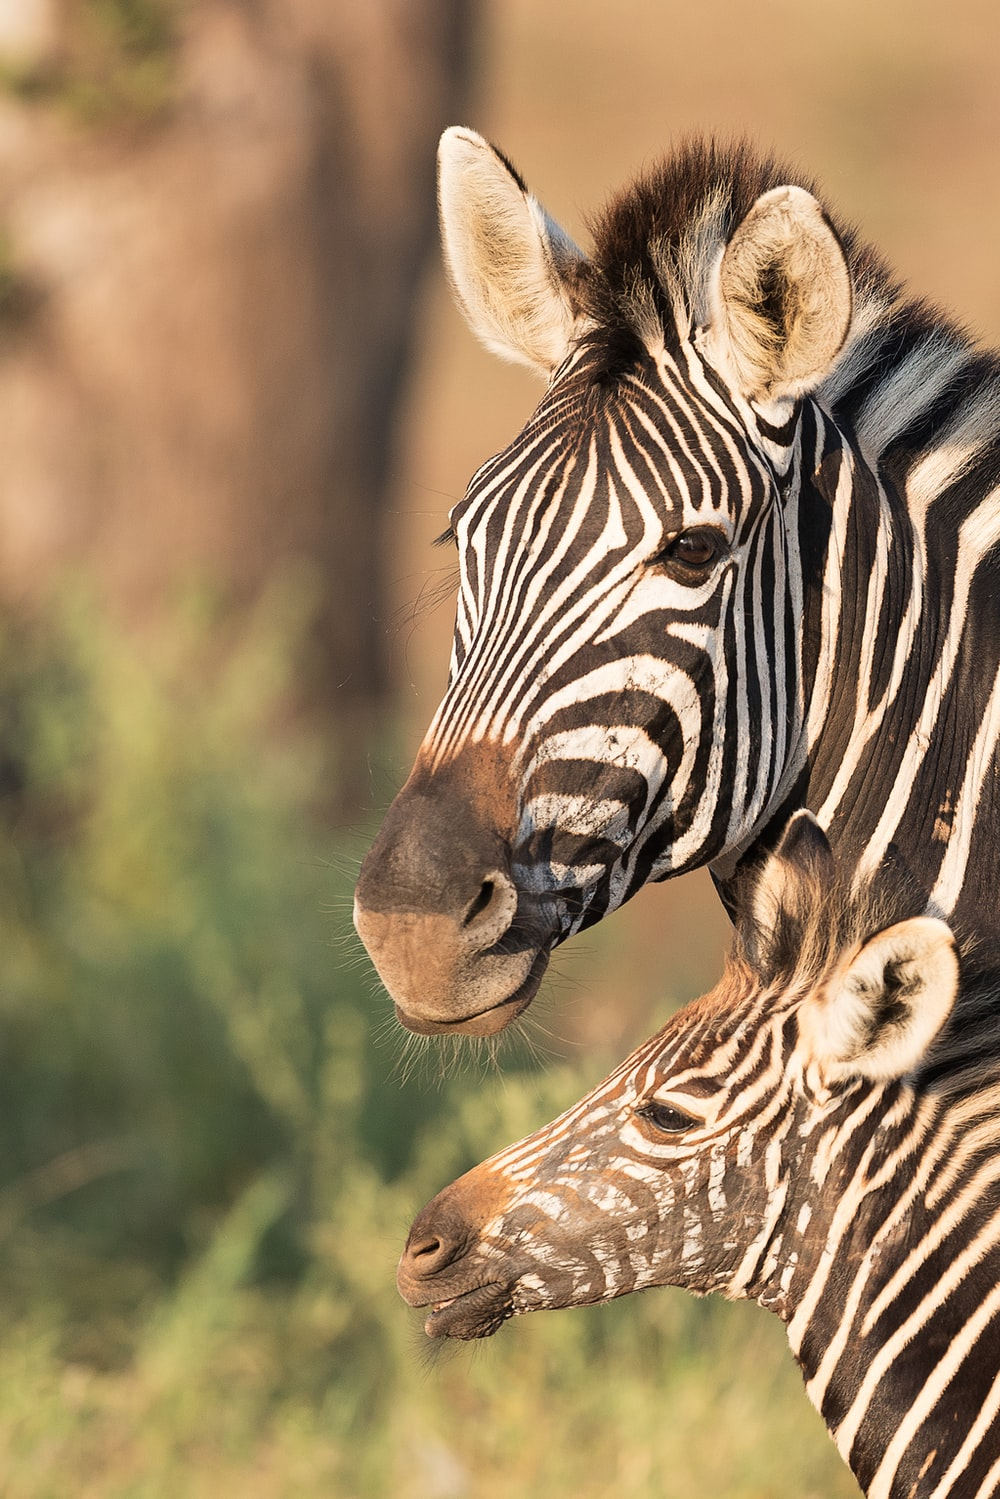 two zebras in shallow focus shot